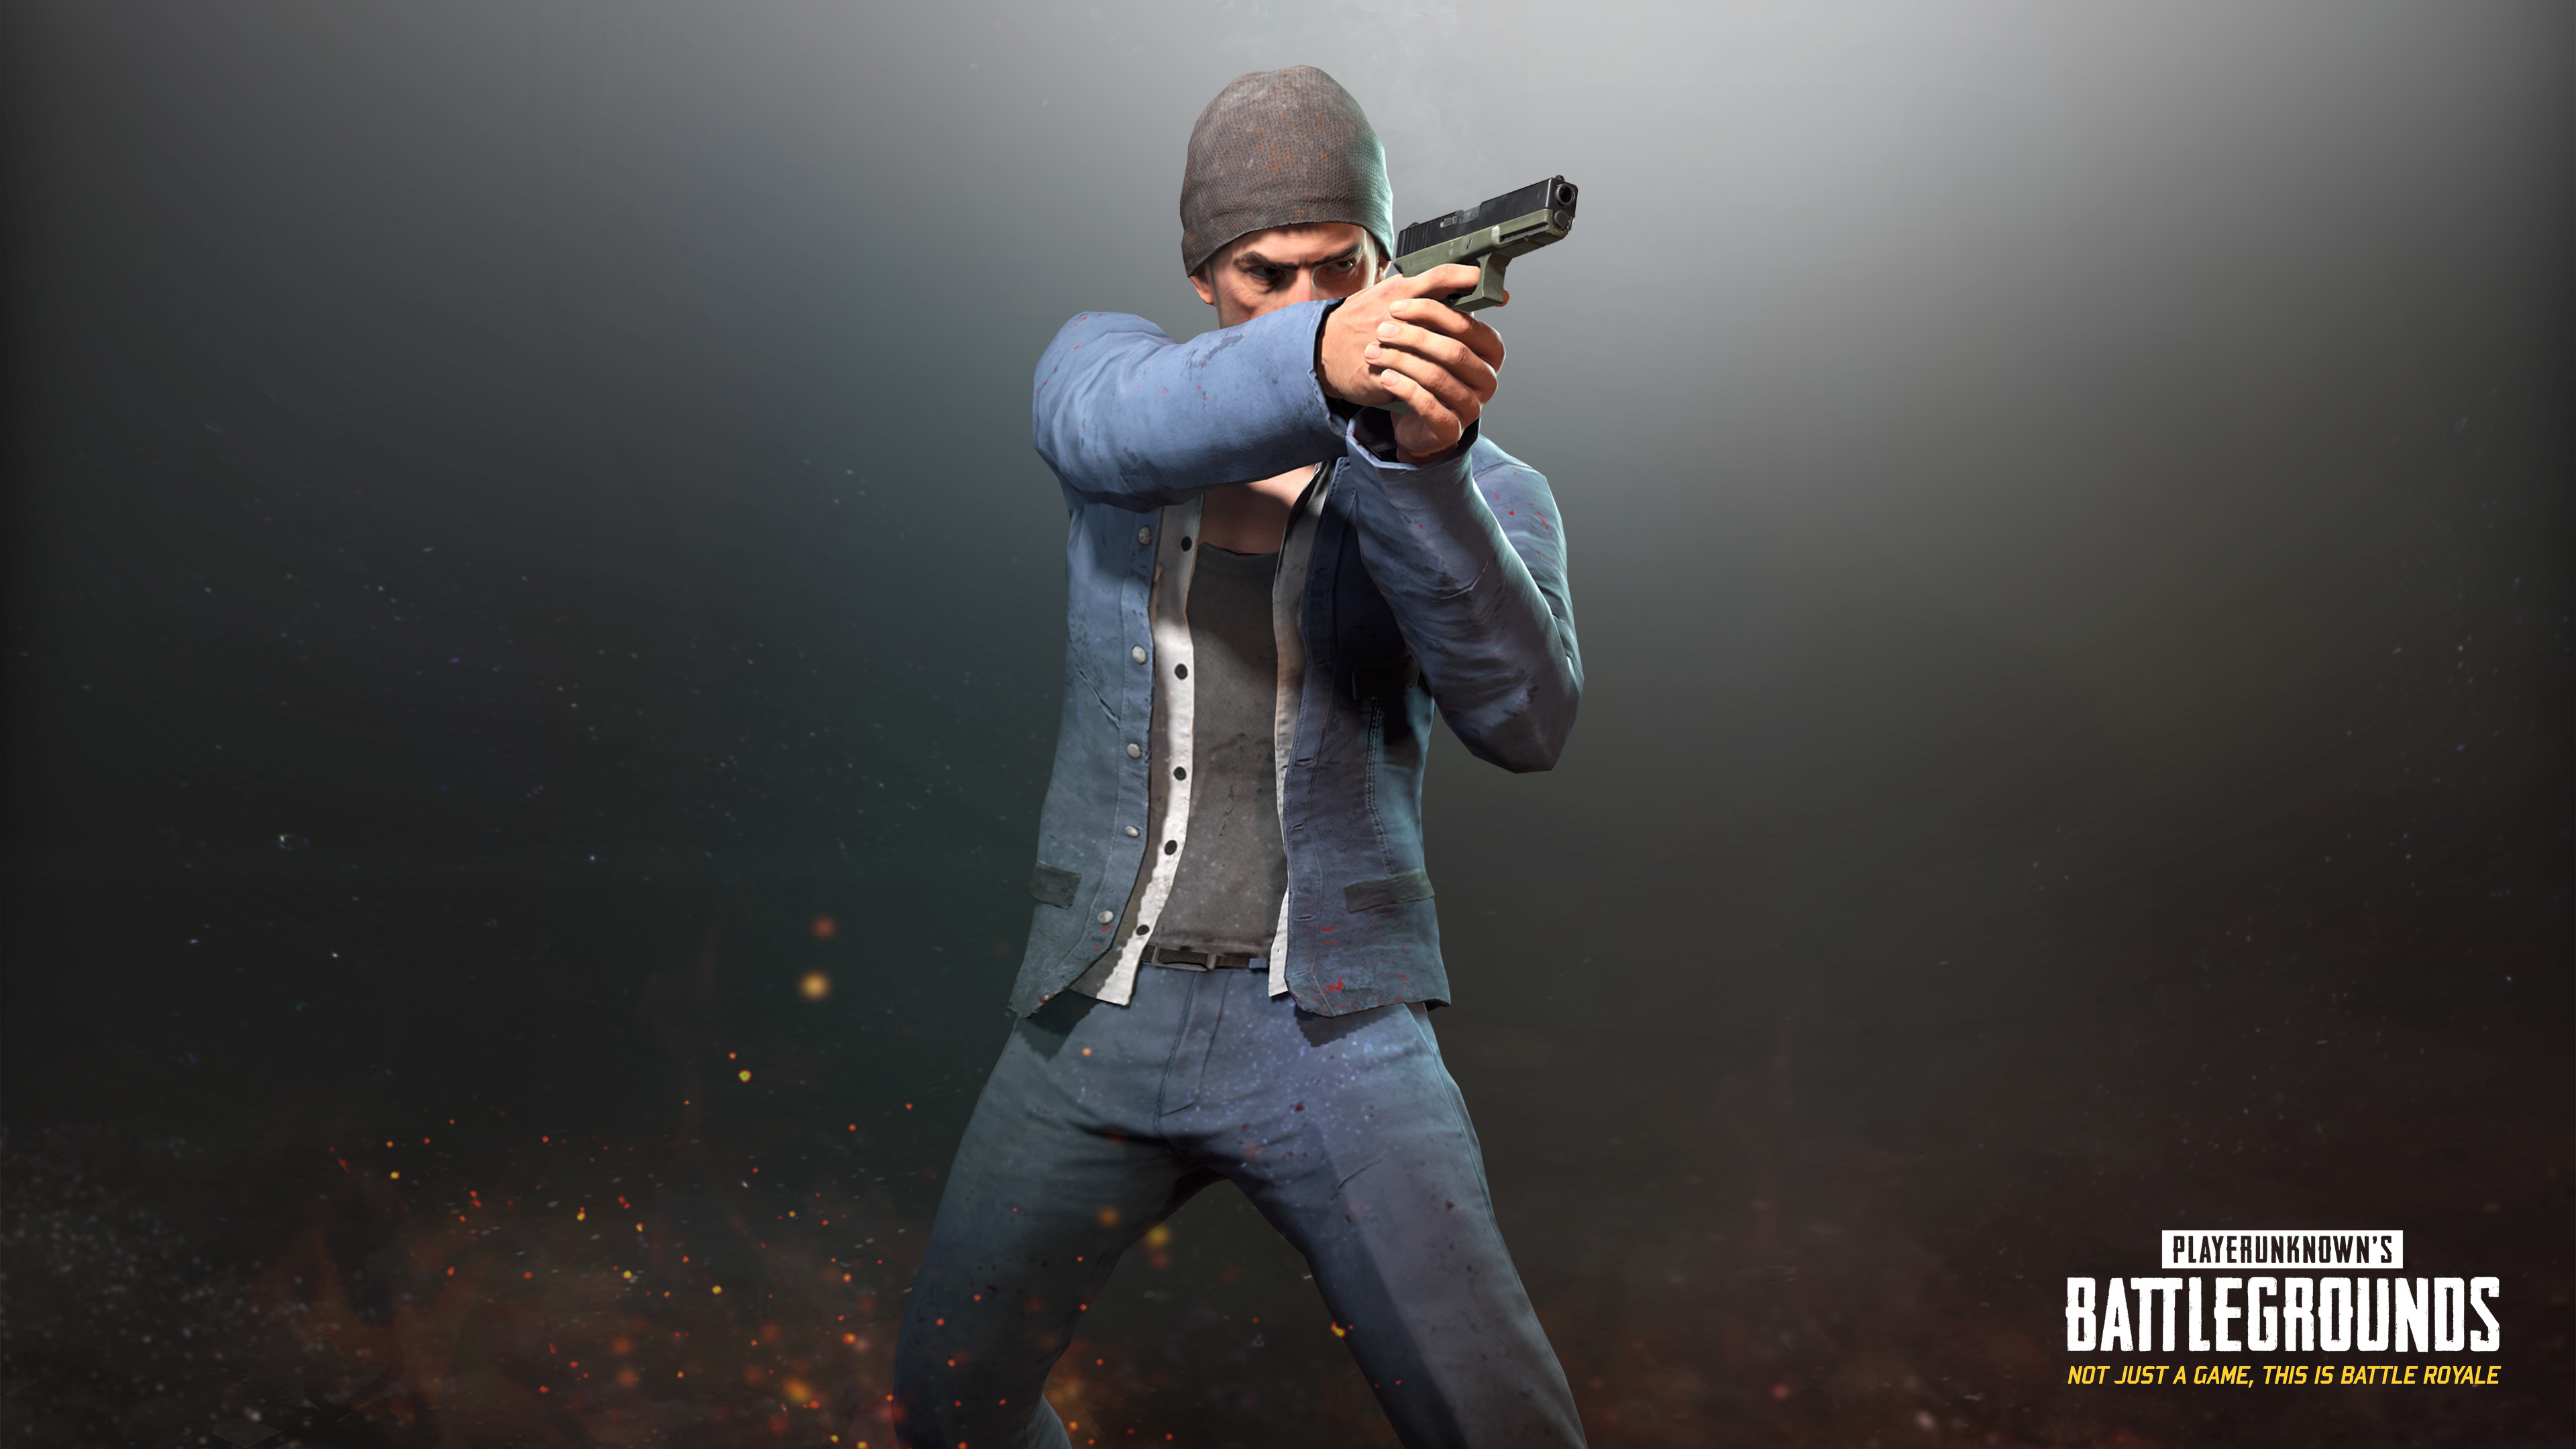 PlayerUnknown's Battlegrounds roba jugadores a CS:GO